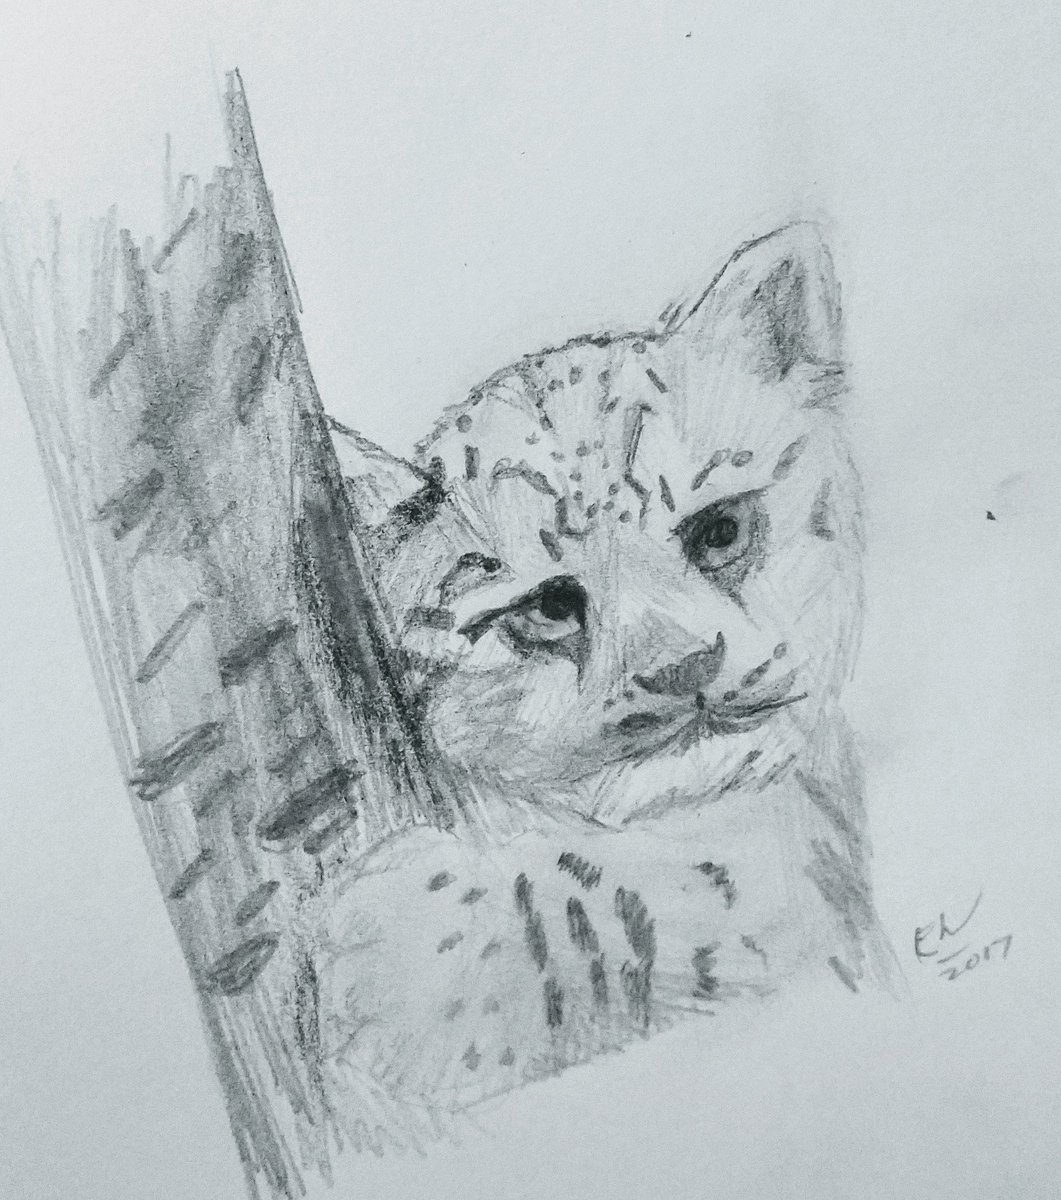 3gհdi On Twitter A Baby Snow Leopard Ethansketches